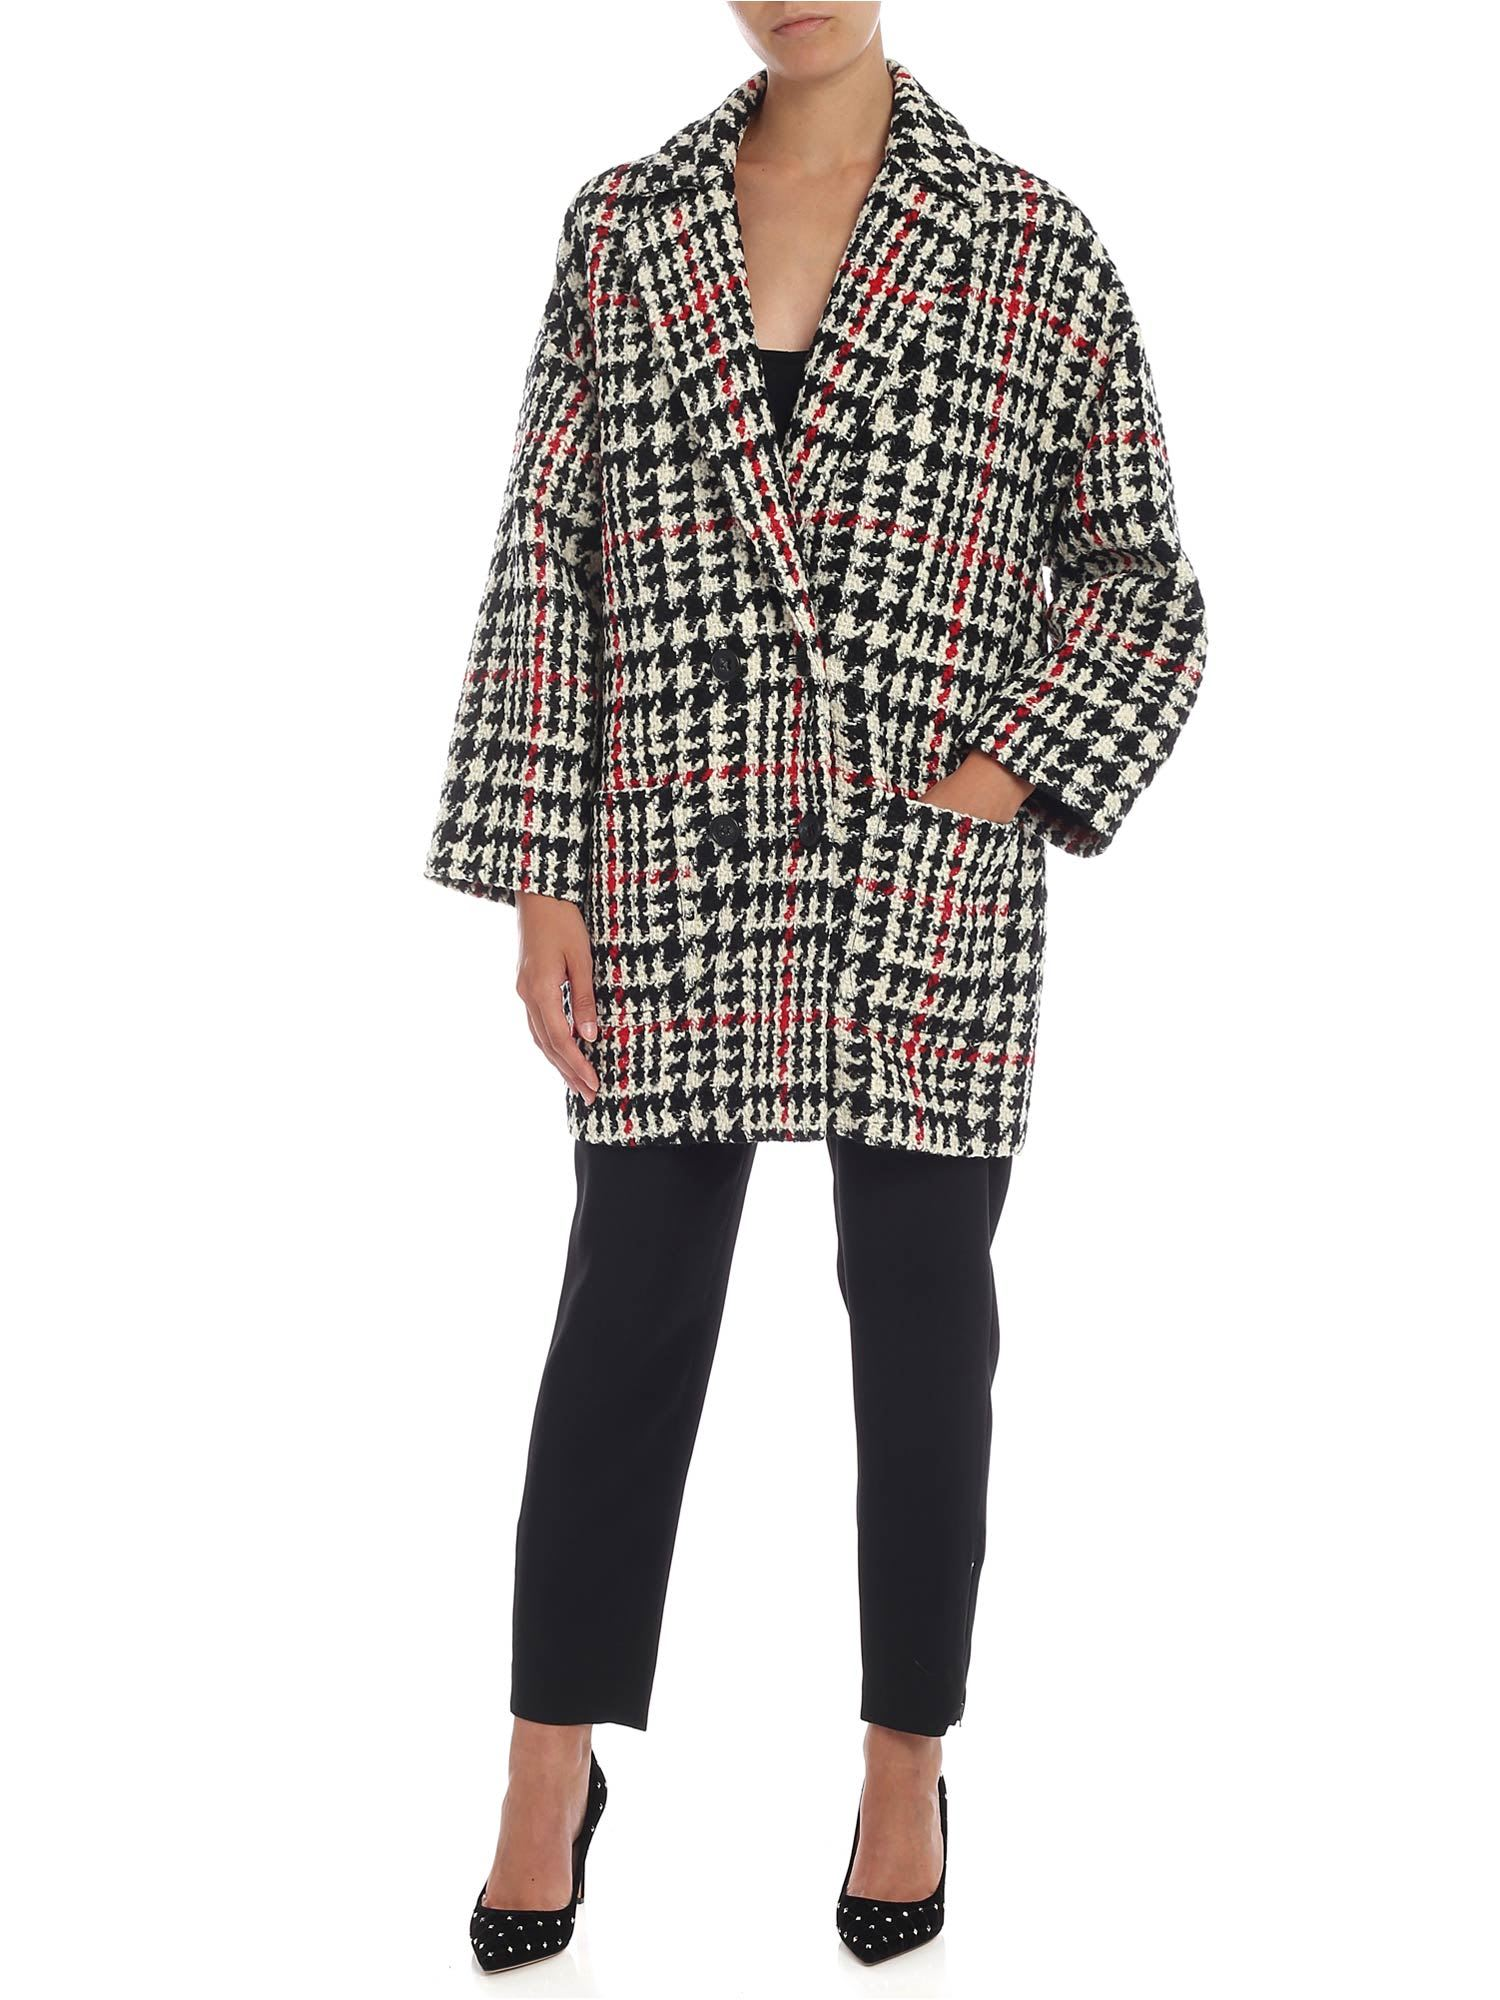 RED Valentino Houndstooth Vwool Blend Coat